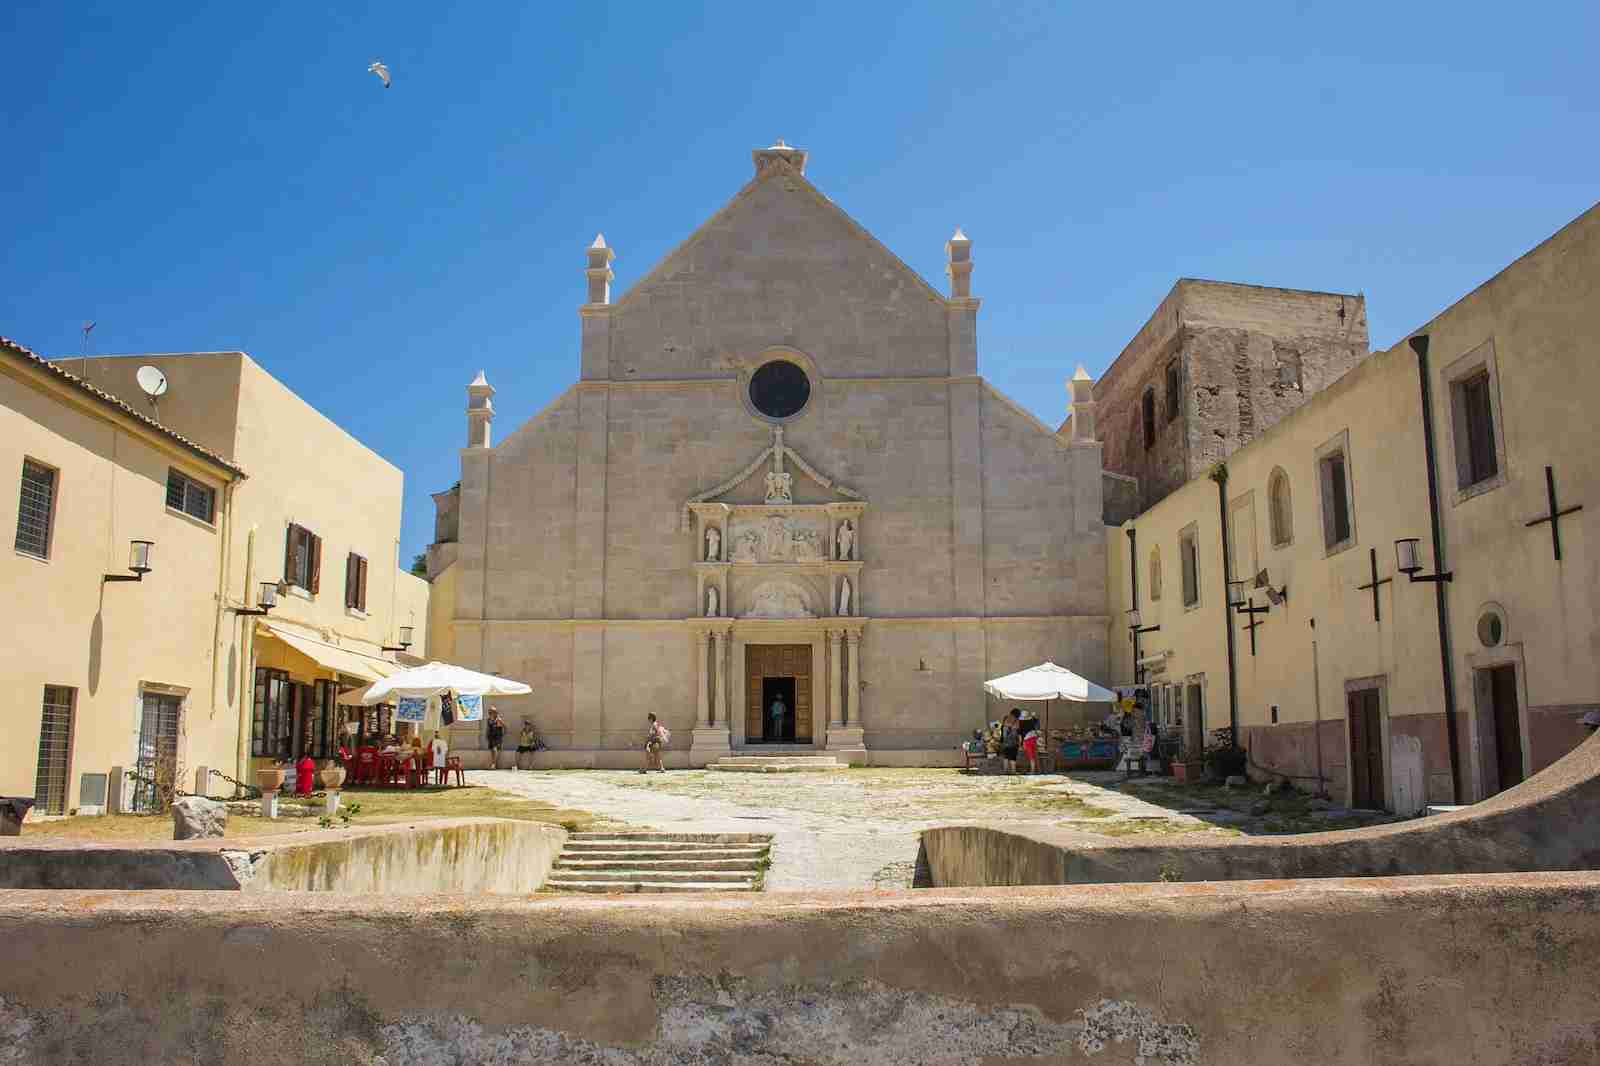 The sanctuary of Santa Maria a Mare in the San Nicola island. (Photo by Buffy1982/Shutterstock)